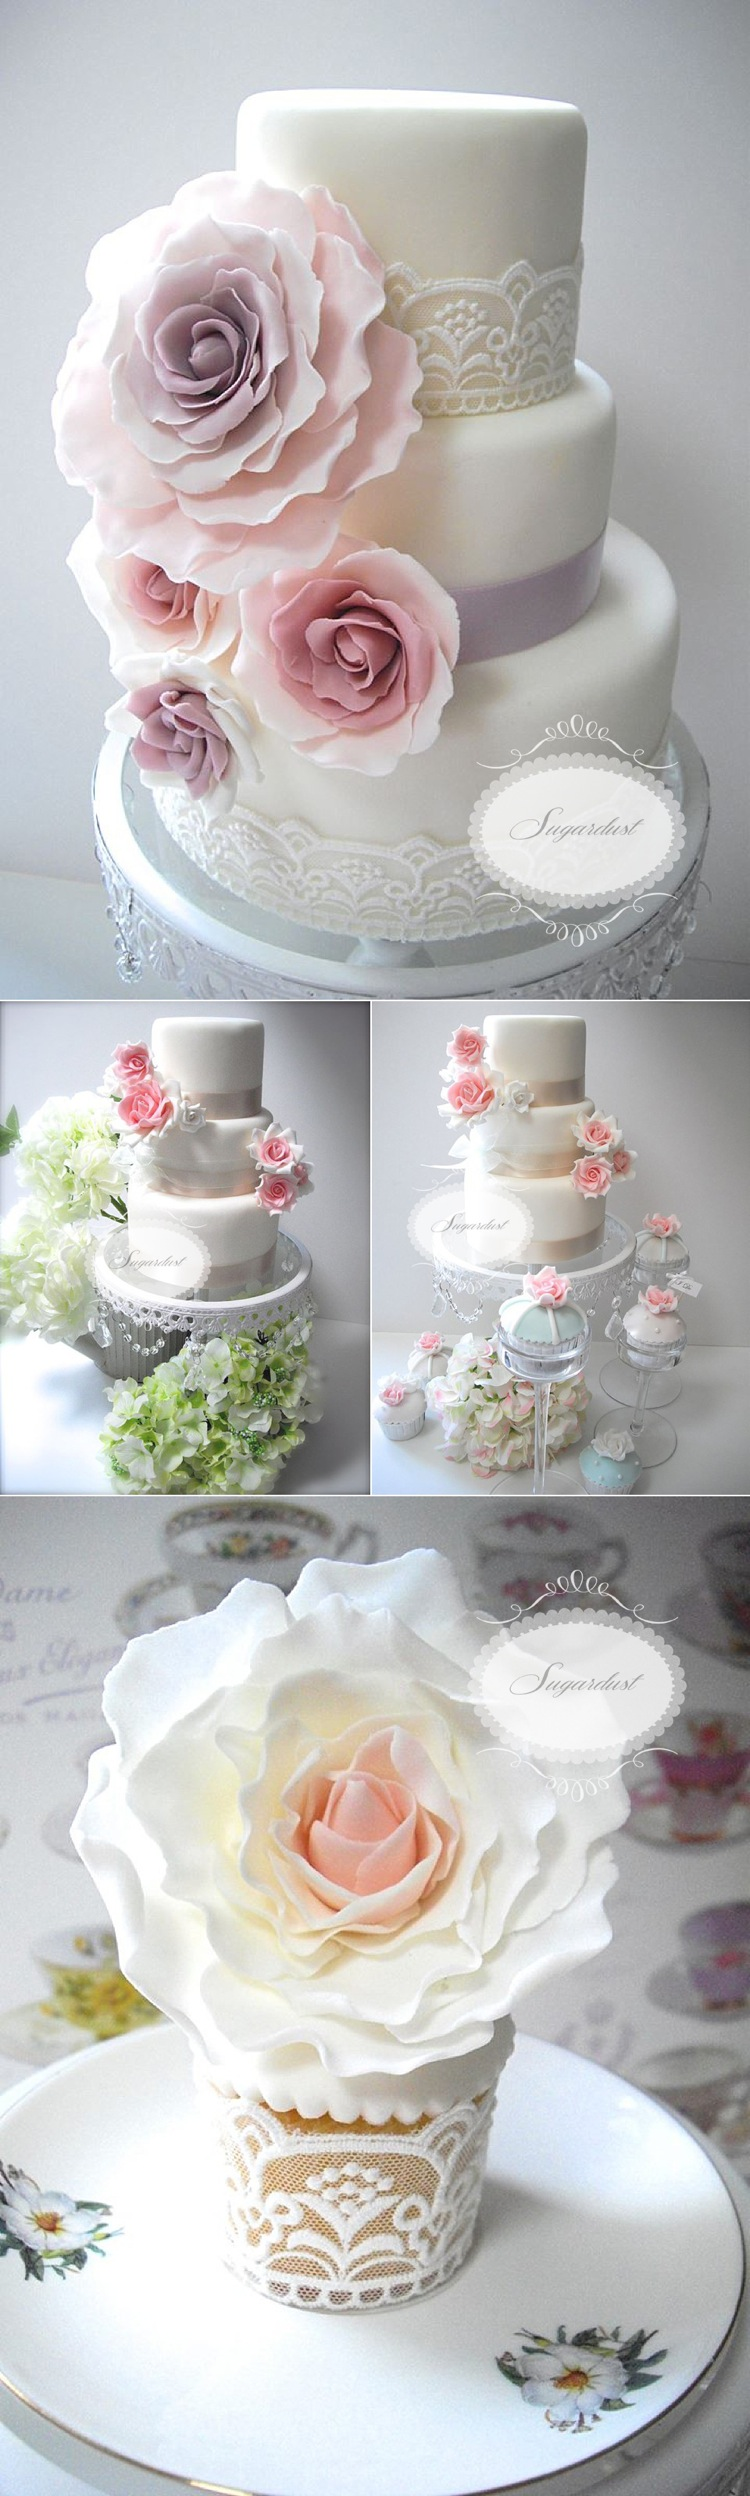 classic tea party roses english style cakes lily sawyer photo